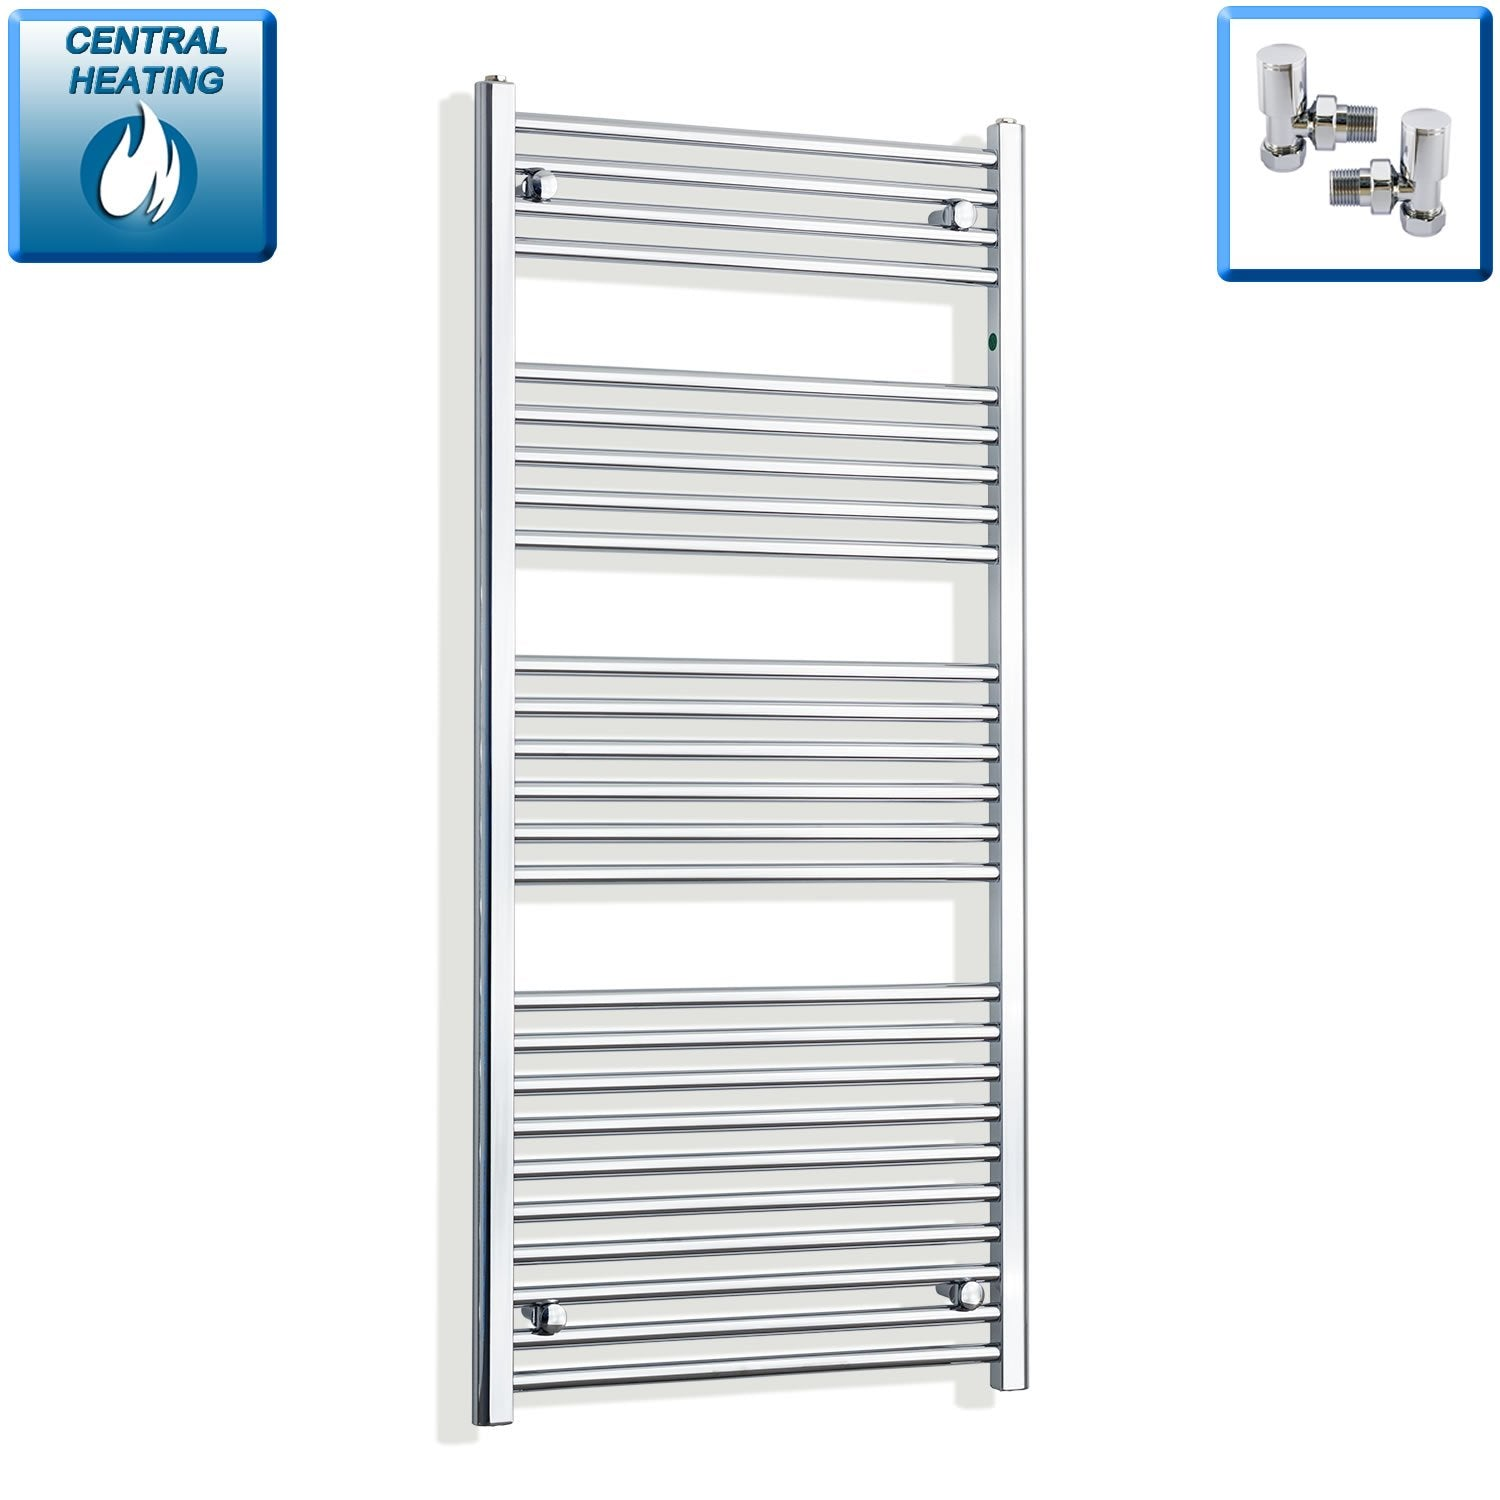 650mm Wide 1400mm High Flat Chrome Heated Towel Rail Radiator HTR,With Angled Valve